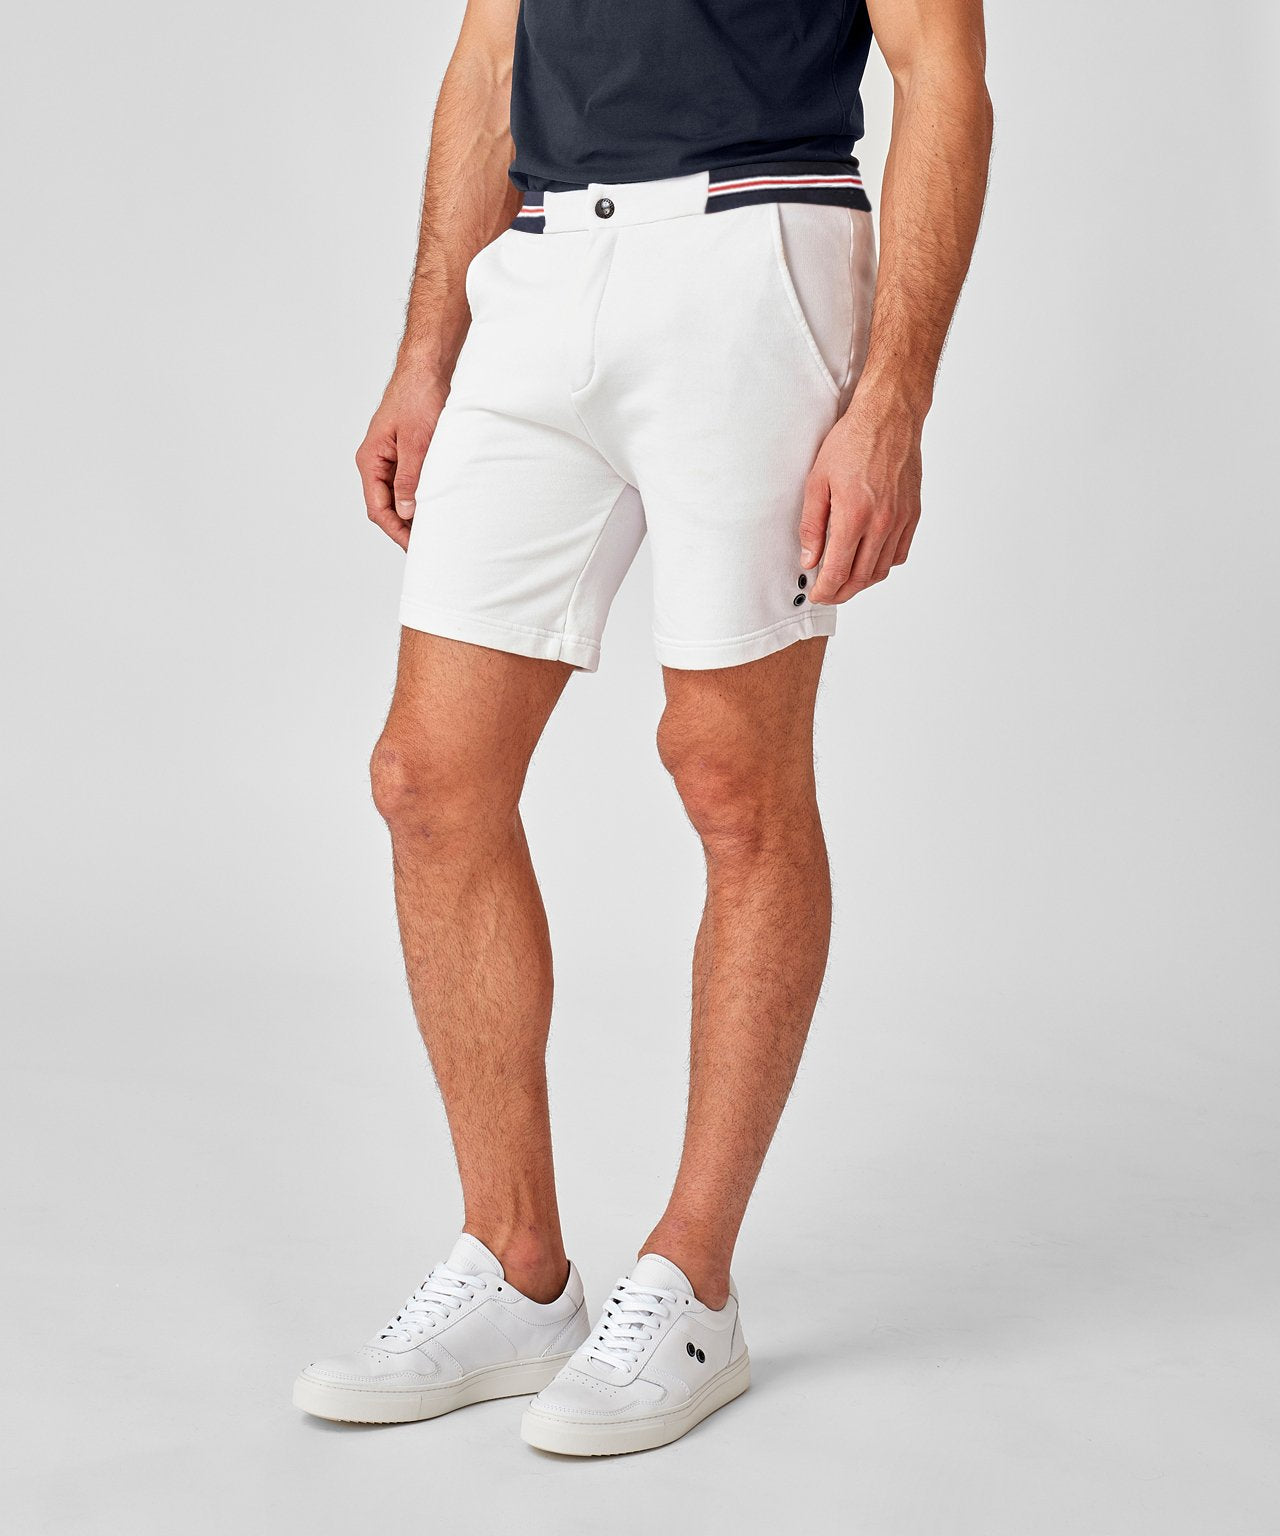 Urban Shorts Waist Stripes - off white